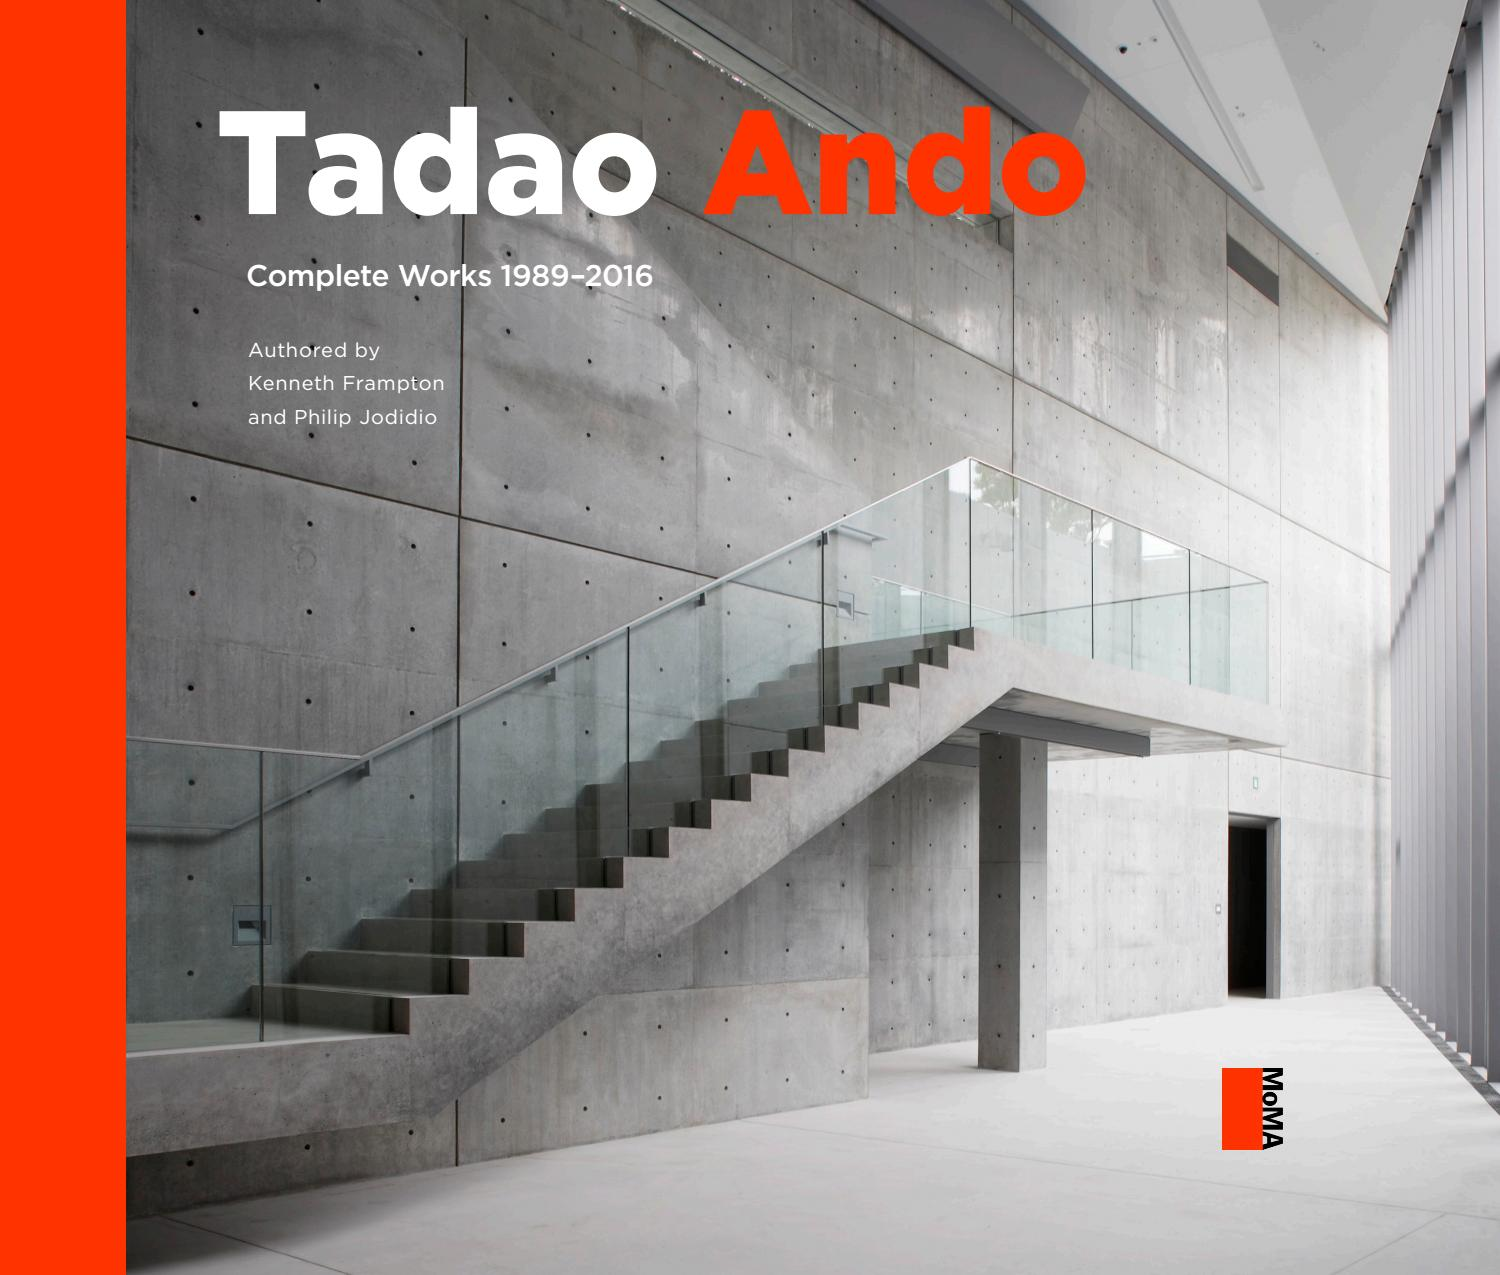 New Light Theater Project: Tadao Ando By Terry Wu